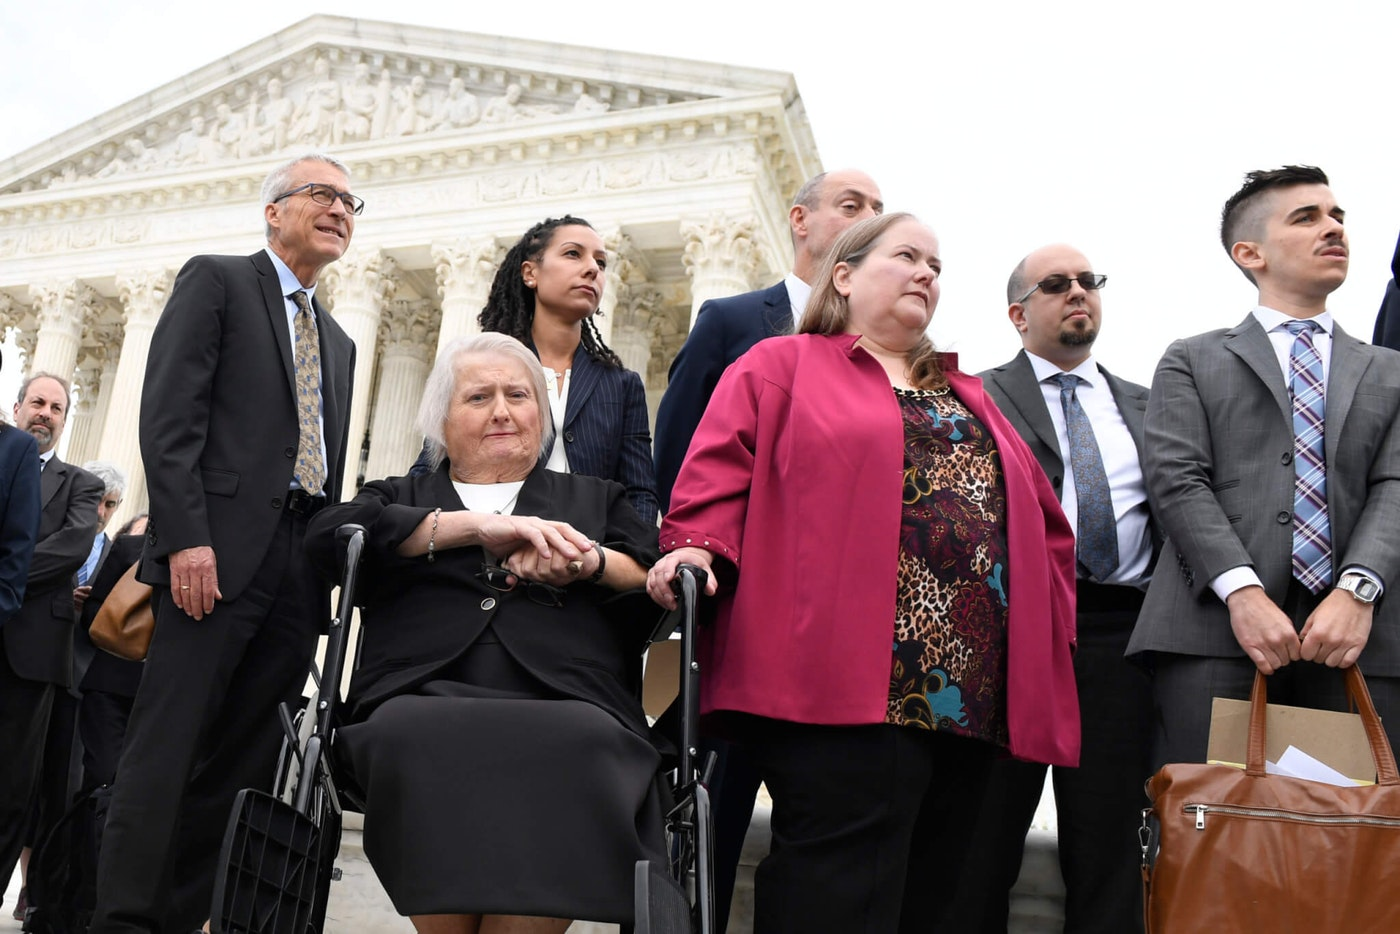 The late Aimee Stephens, seated, and her wife Donna Stephens, in pink, listen during a news conference outside the Supreme Court in Washington, Tuesday, Oct. 8, 2019. Aimee Stephens lost her job when she told Thomas Rost, owner of the Detroit-area R.G. and G.R. Harris Funeral Homes, that she had struggled with gender identity issues almost her whole life. Chase Strangio, listening at right, is an attorney with the American Civil Liberties Union who will be argues in the Harris Funeral Homes case on behalf of Aimee Stephens. (AP Photo/Susan Walsh)